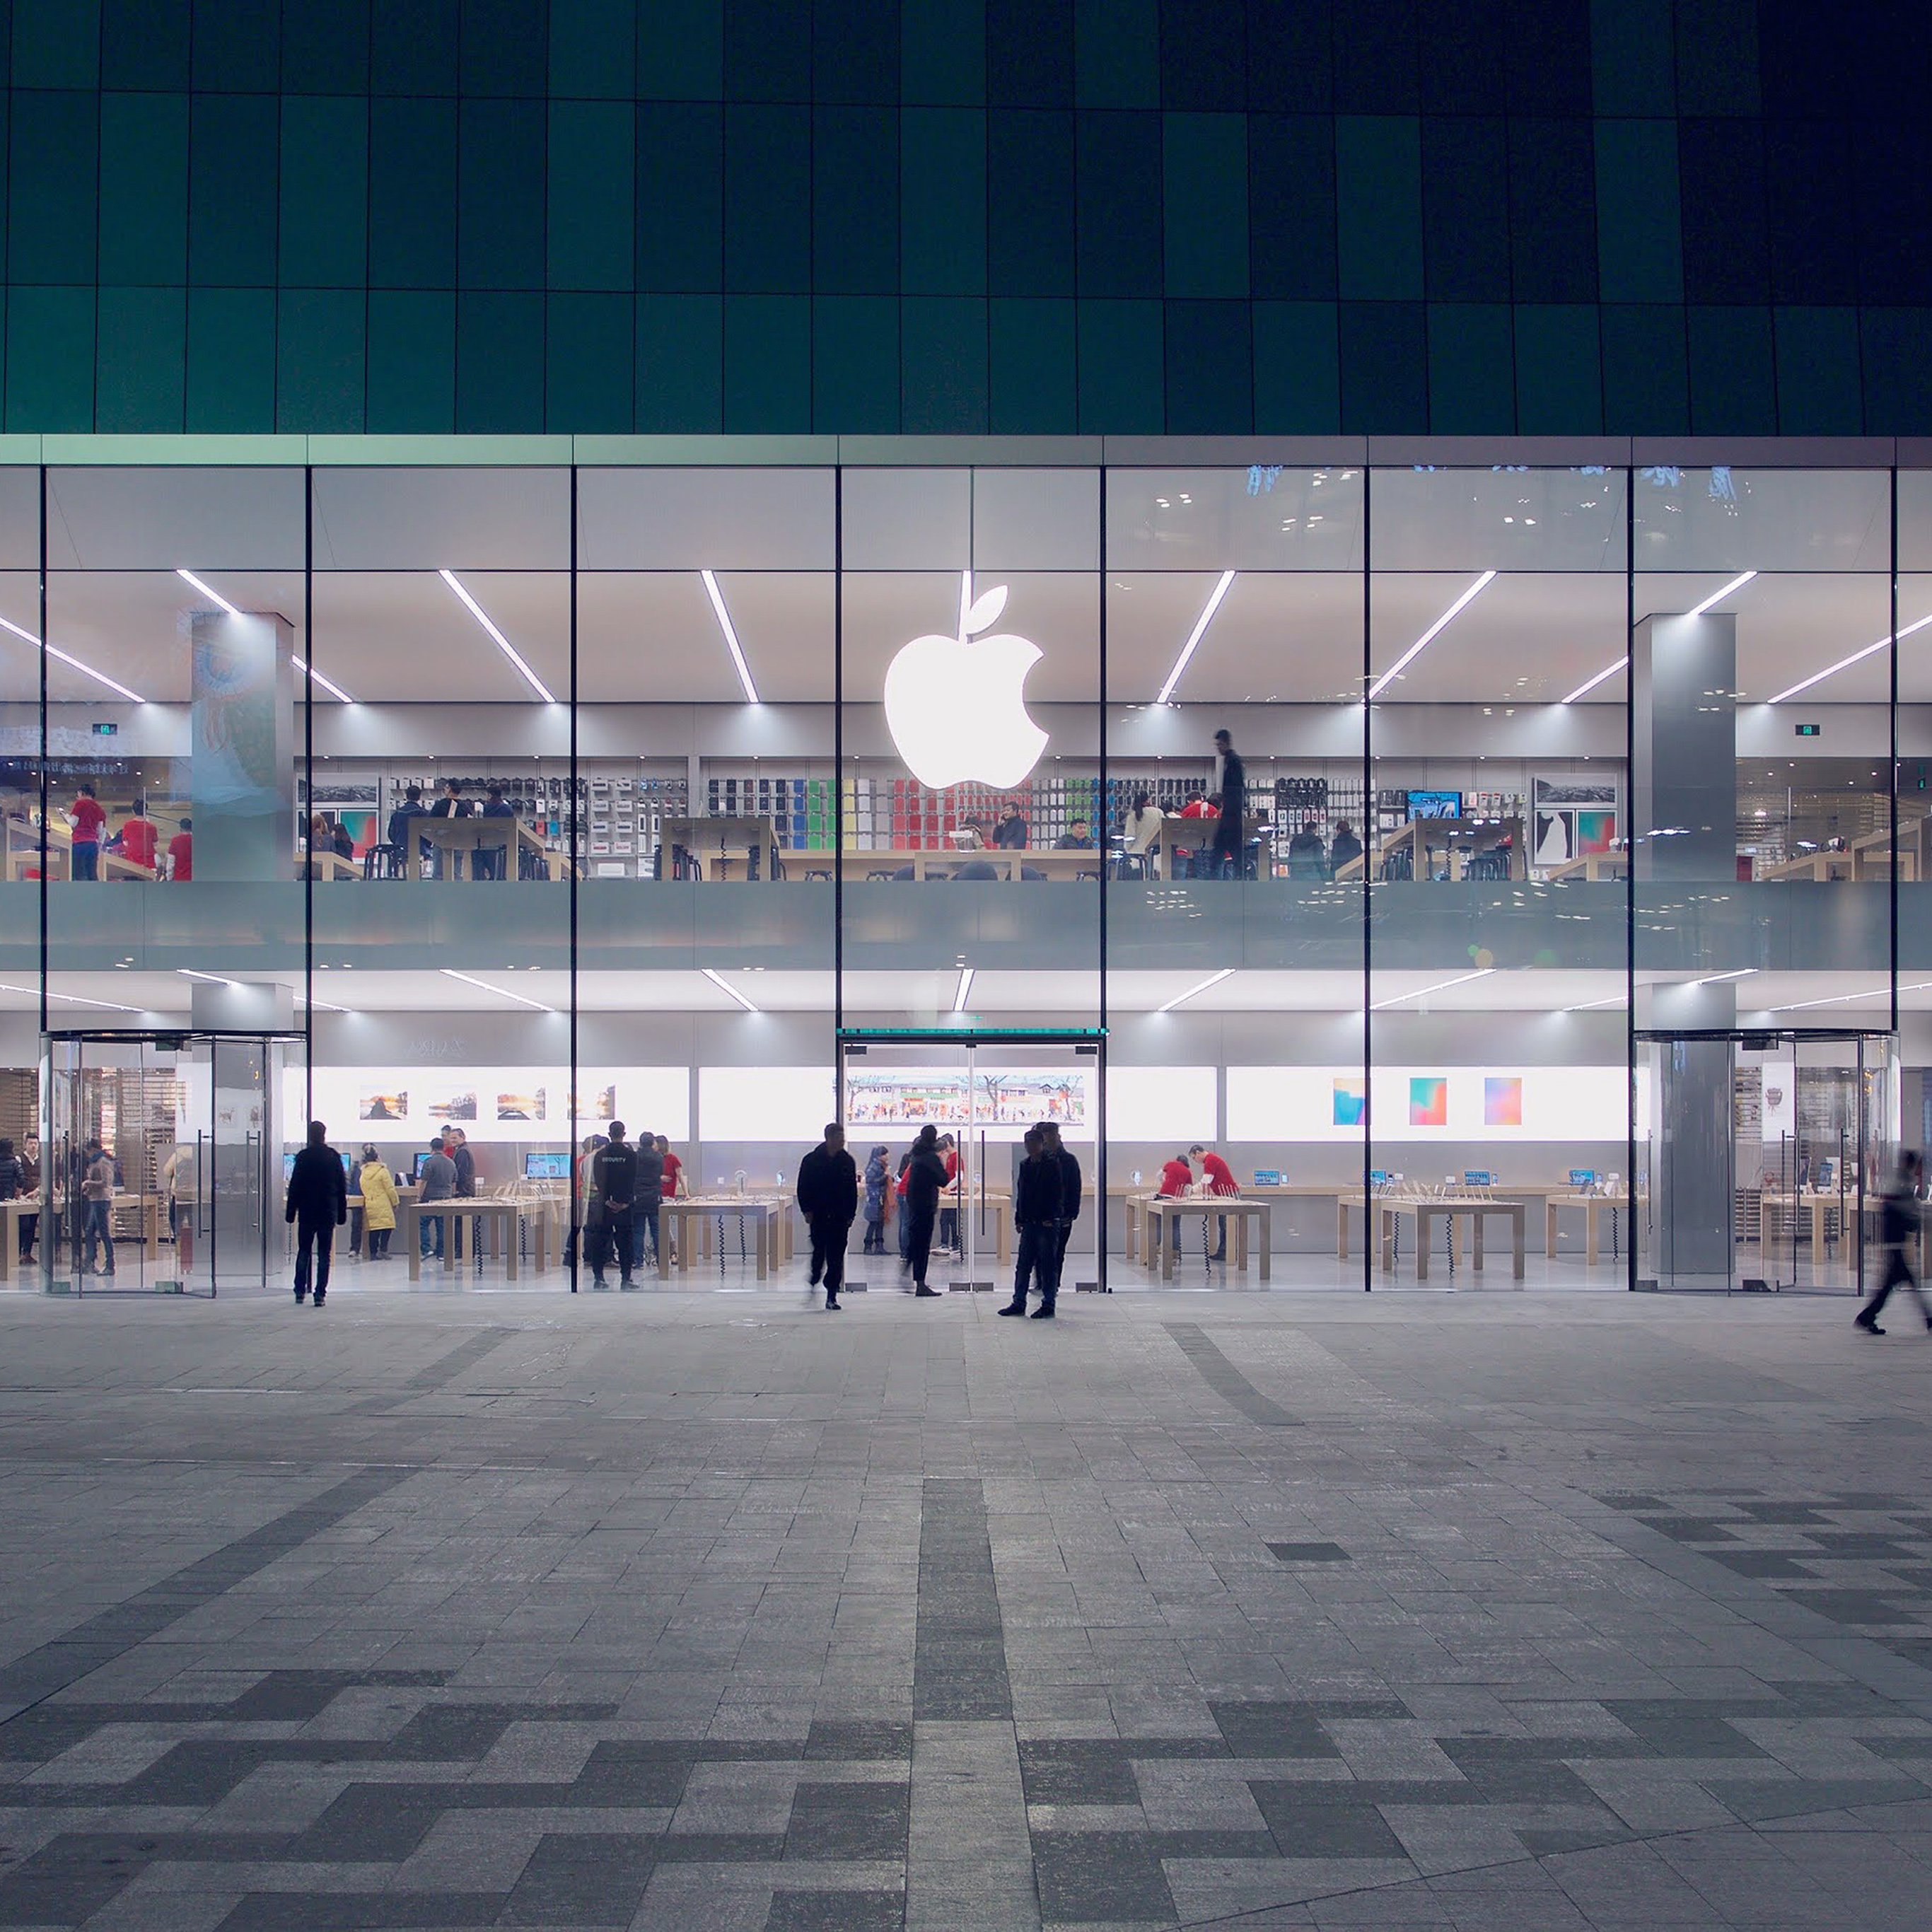 ak39-apple-store-front-architecture-city - Papers.co